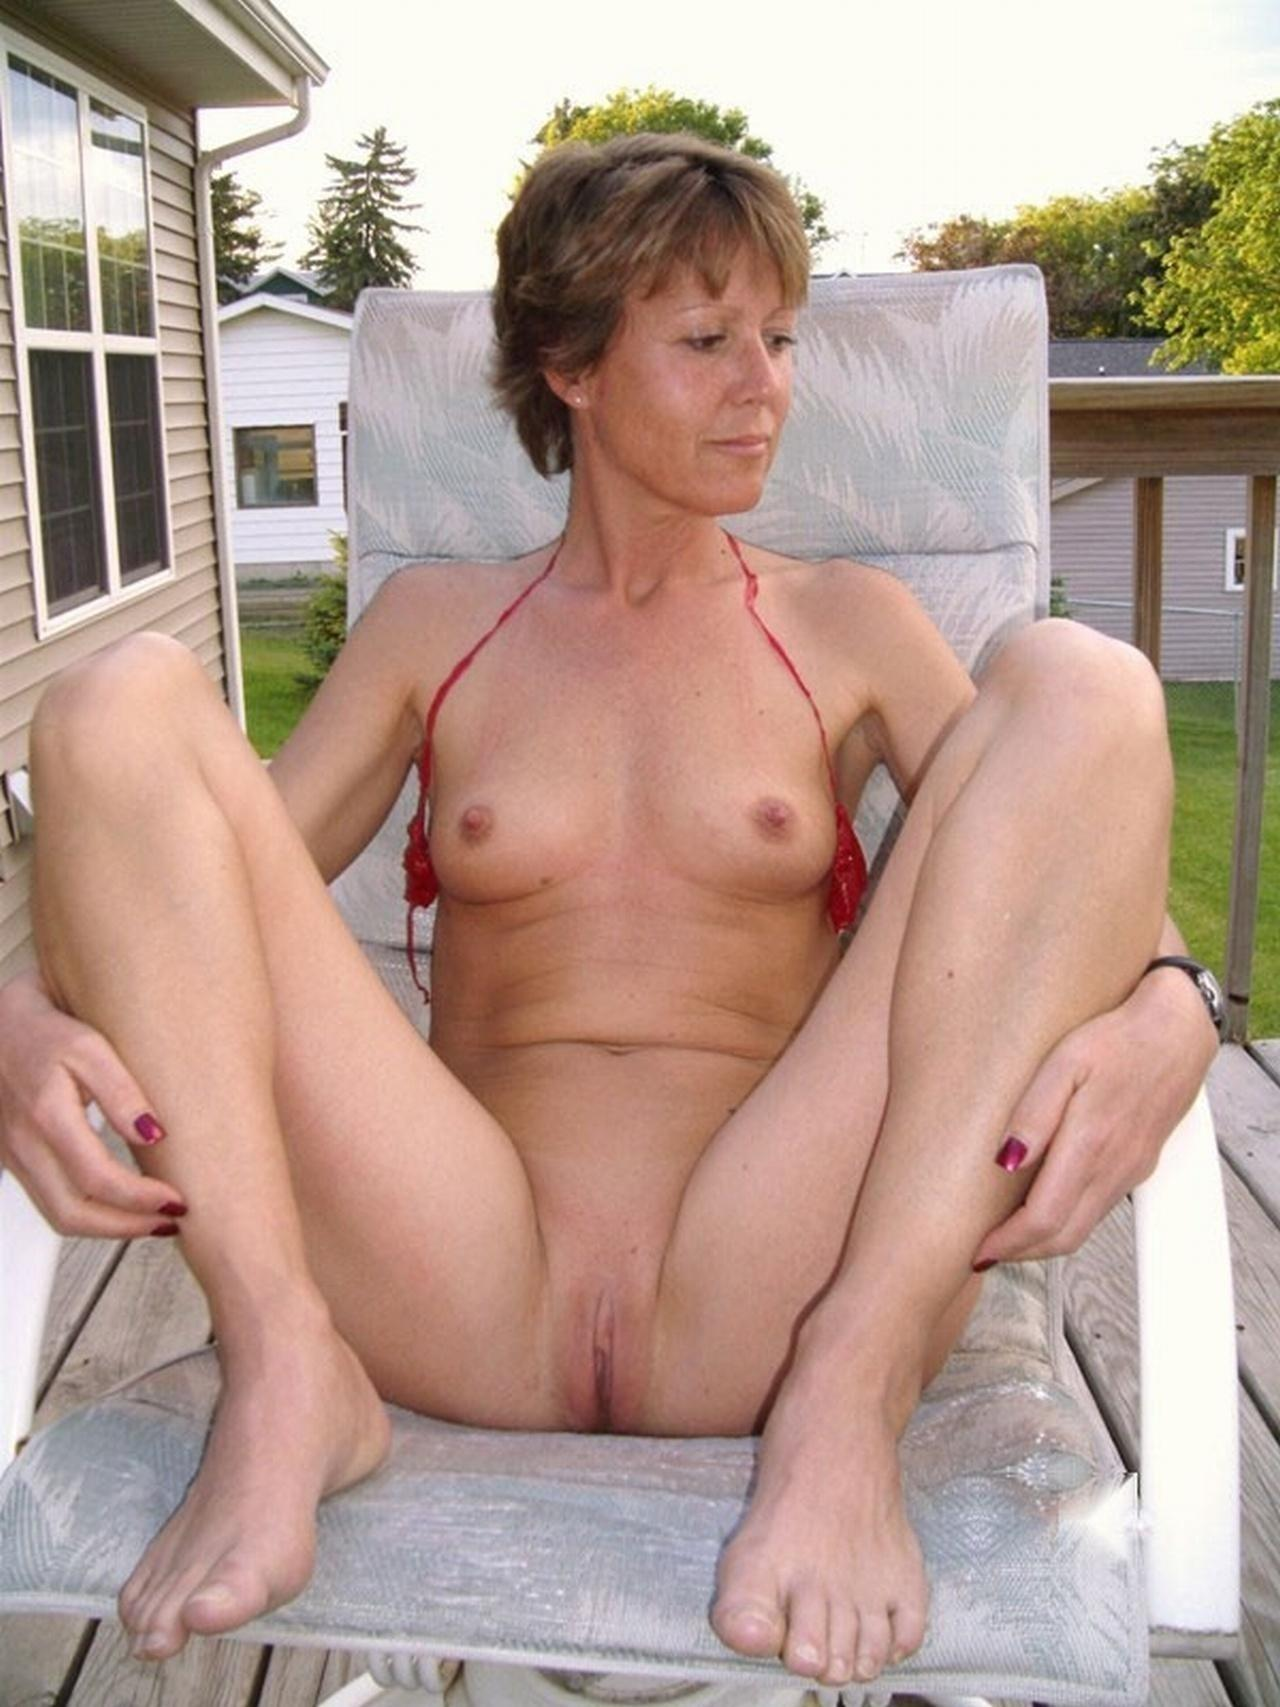 Skinny mature lover shows her bald pussy and ass pichunter